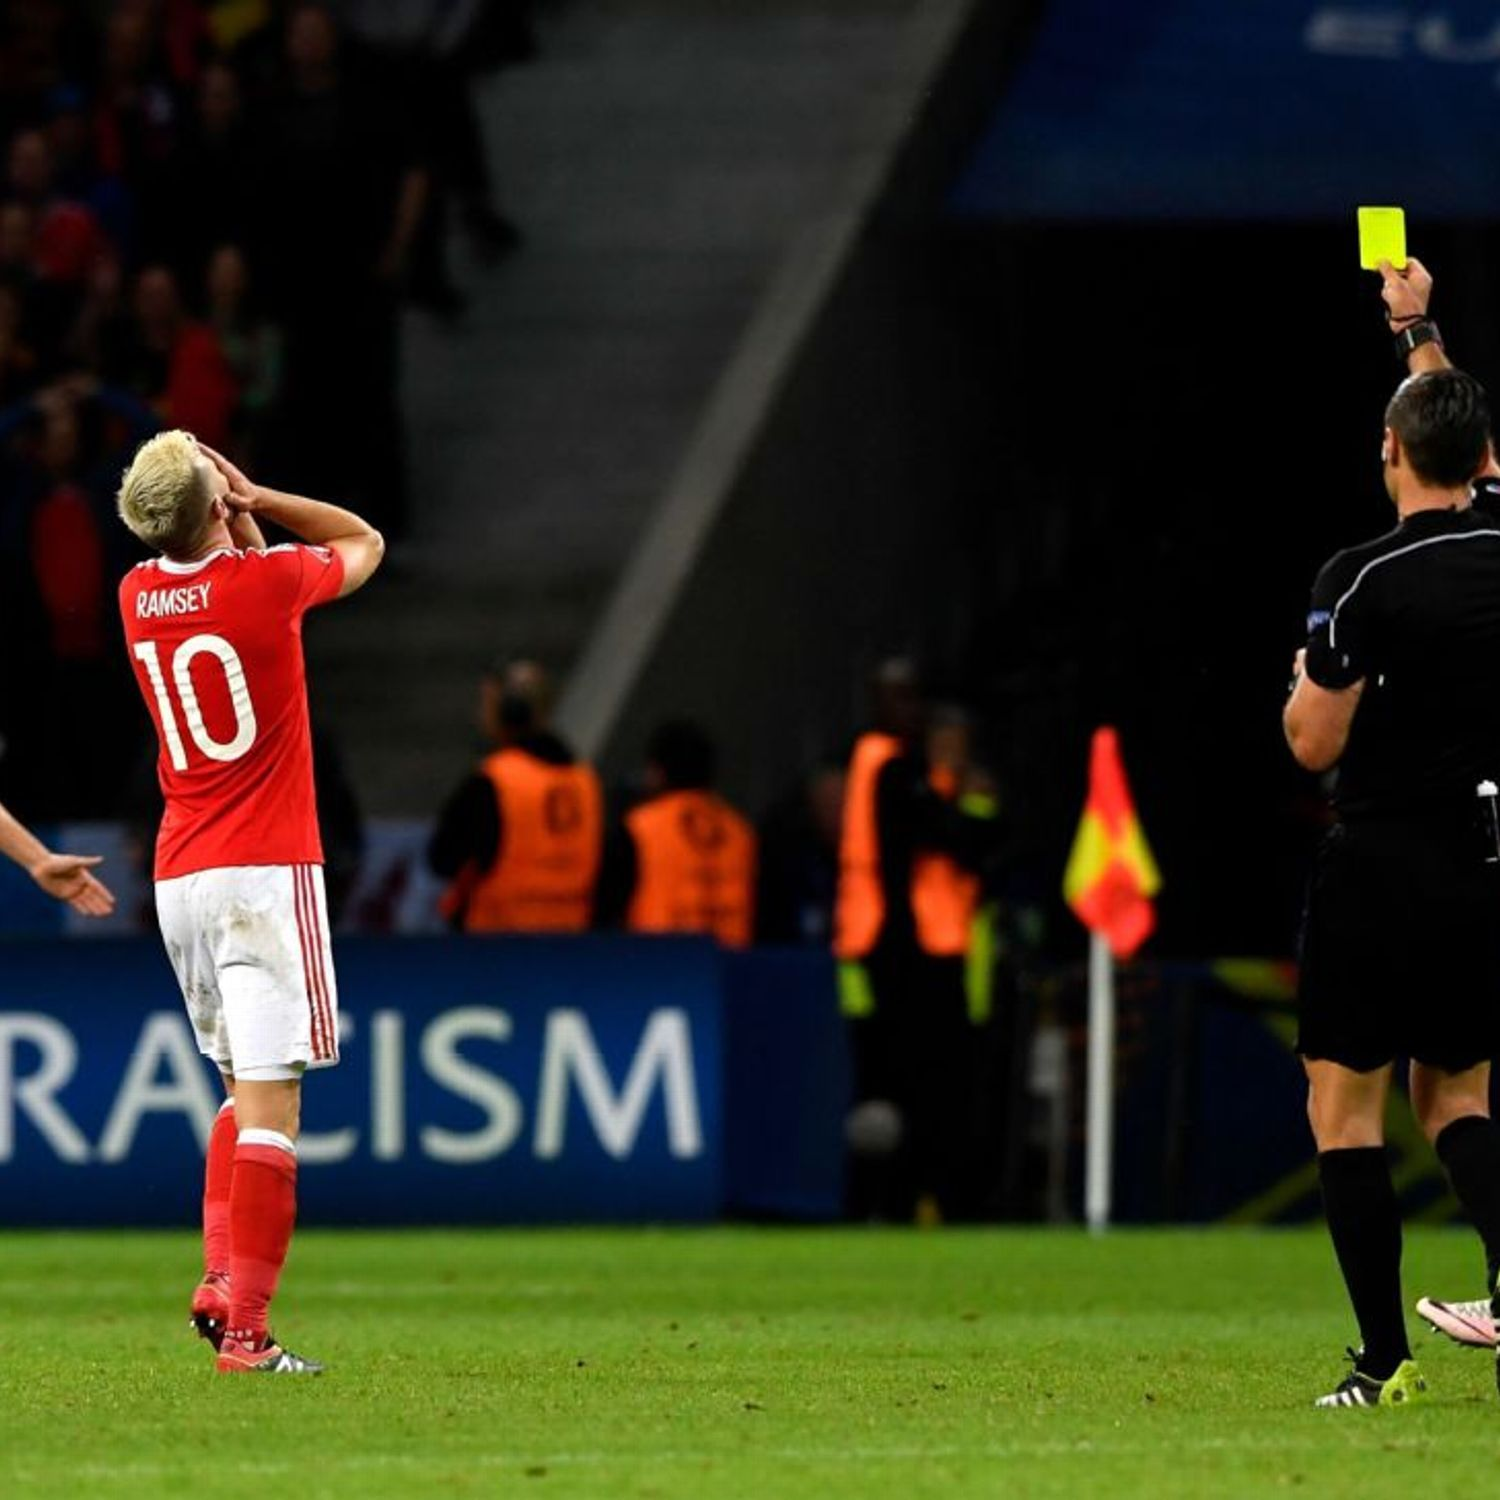 Suspending players like Aaron Ramsey for yellow cards is cruel punishment